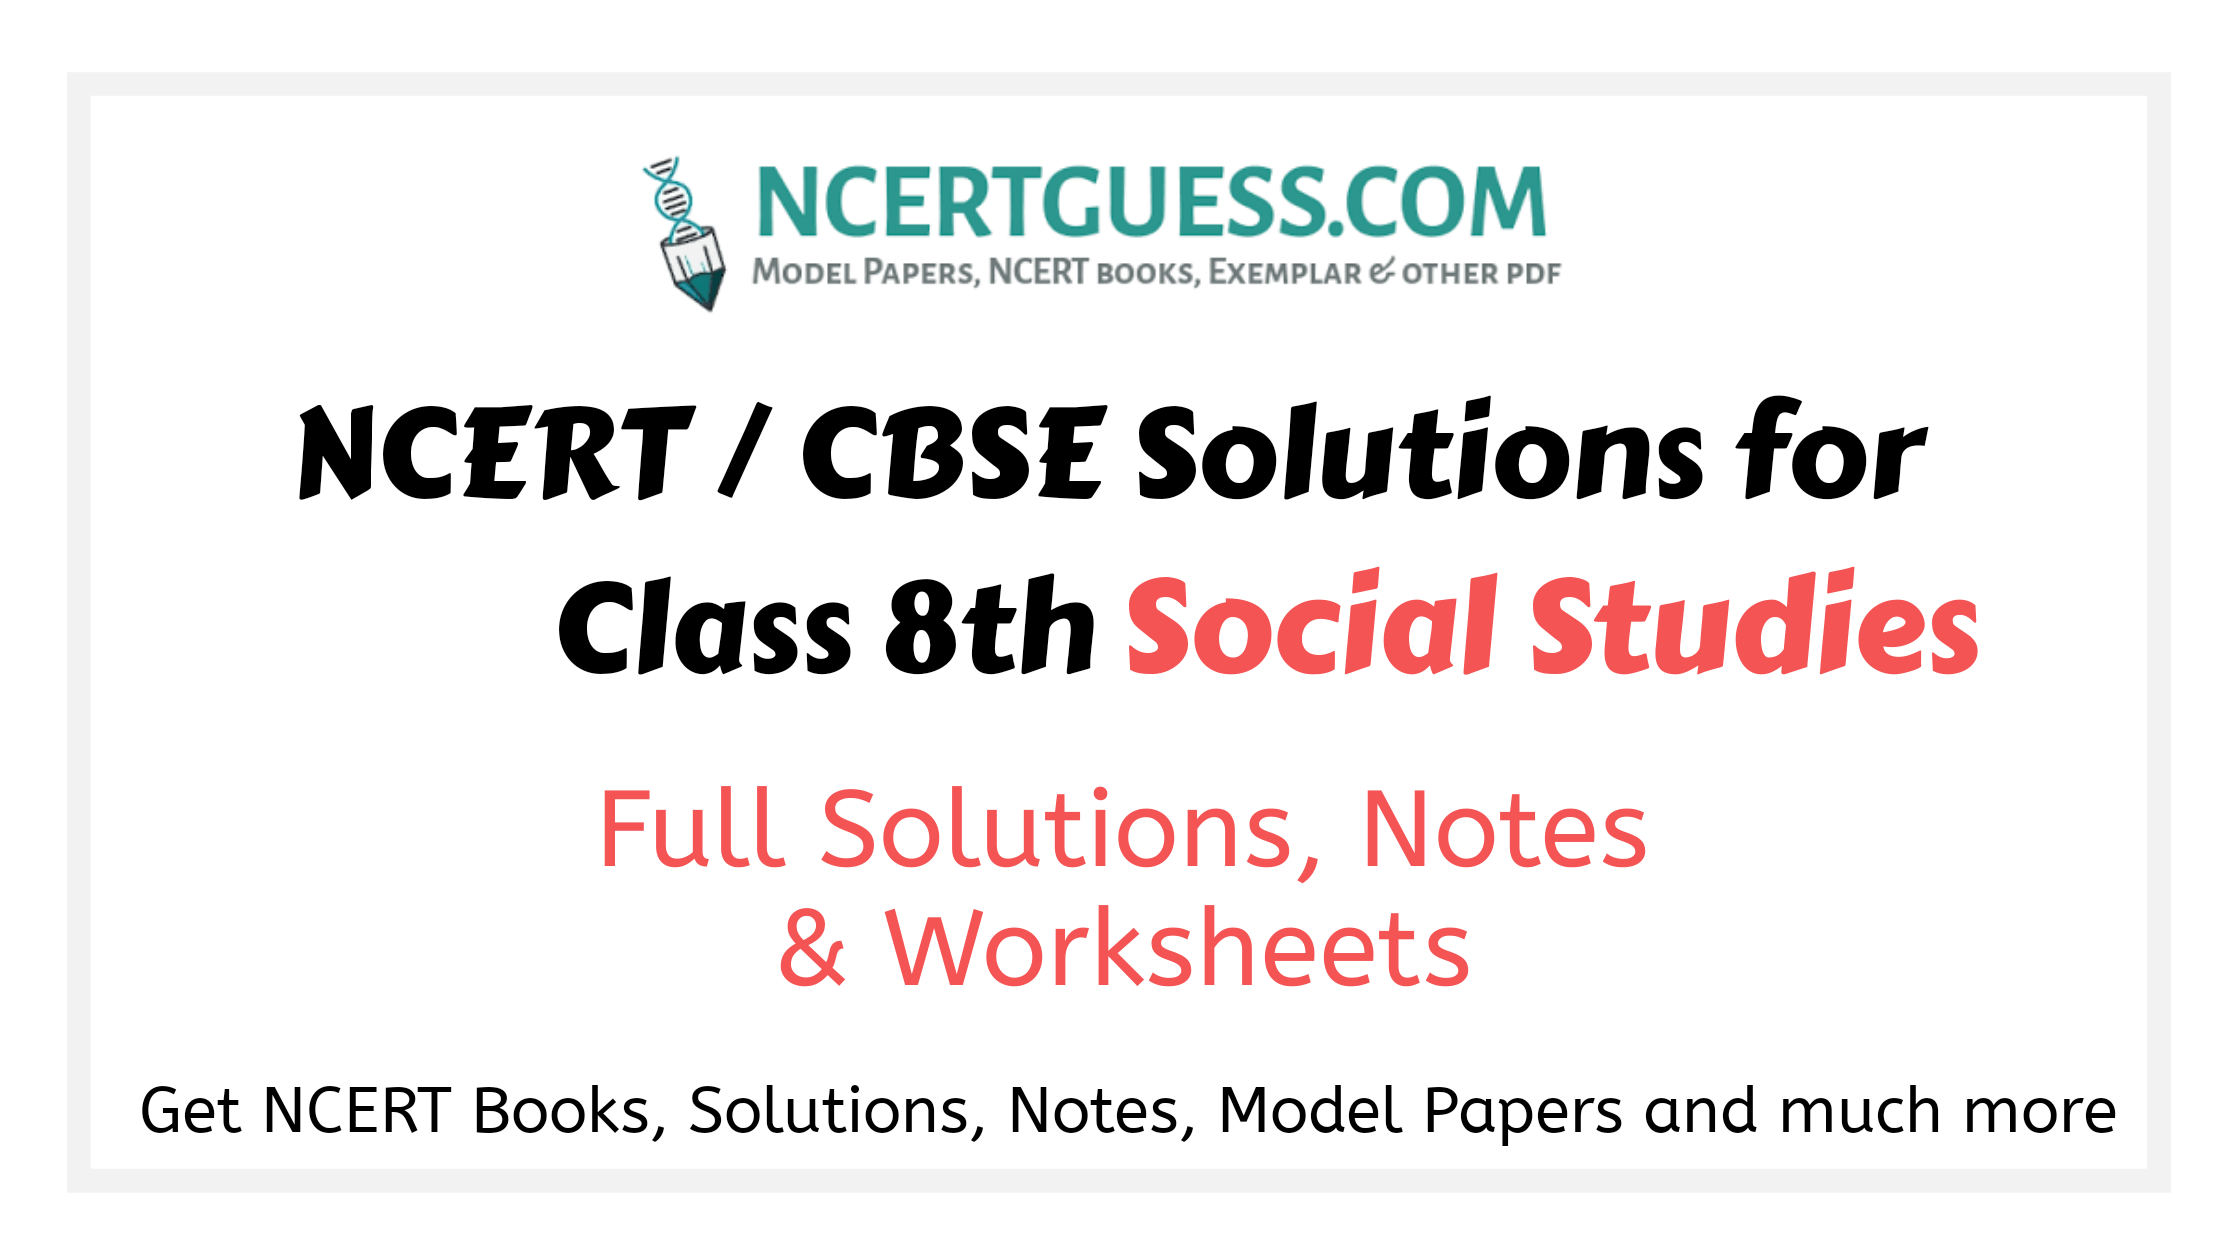 Ncert / cbse solutions class 8th social studies